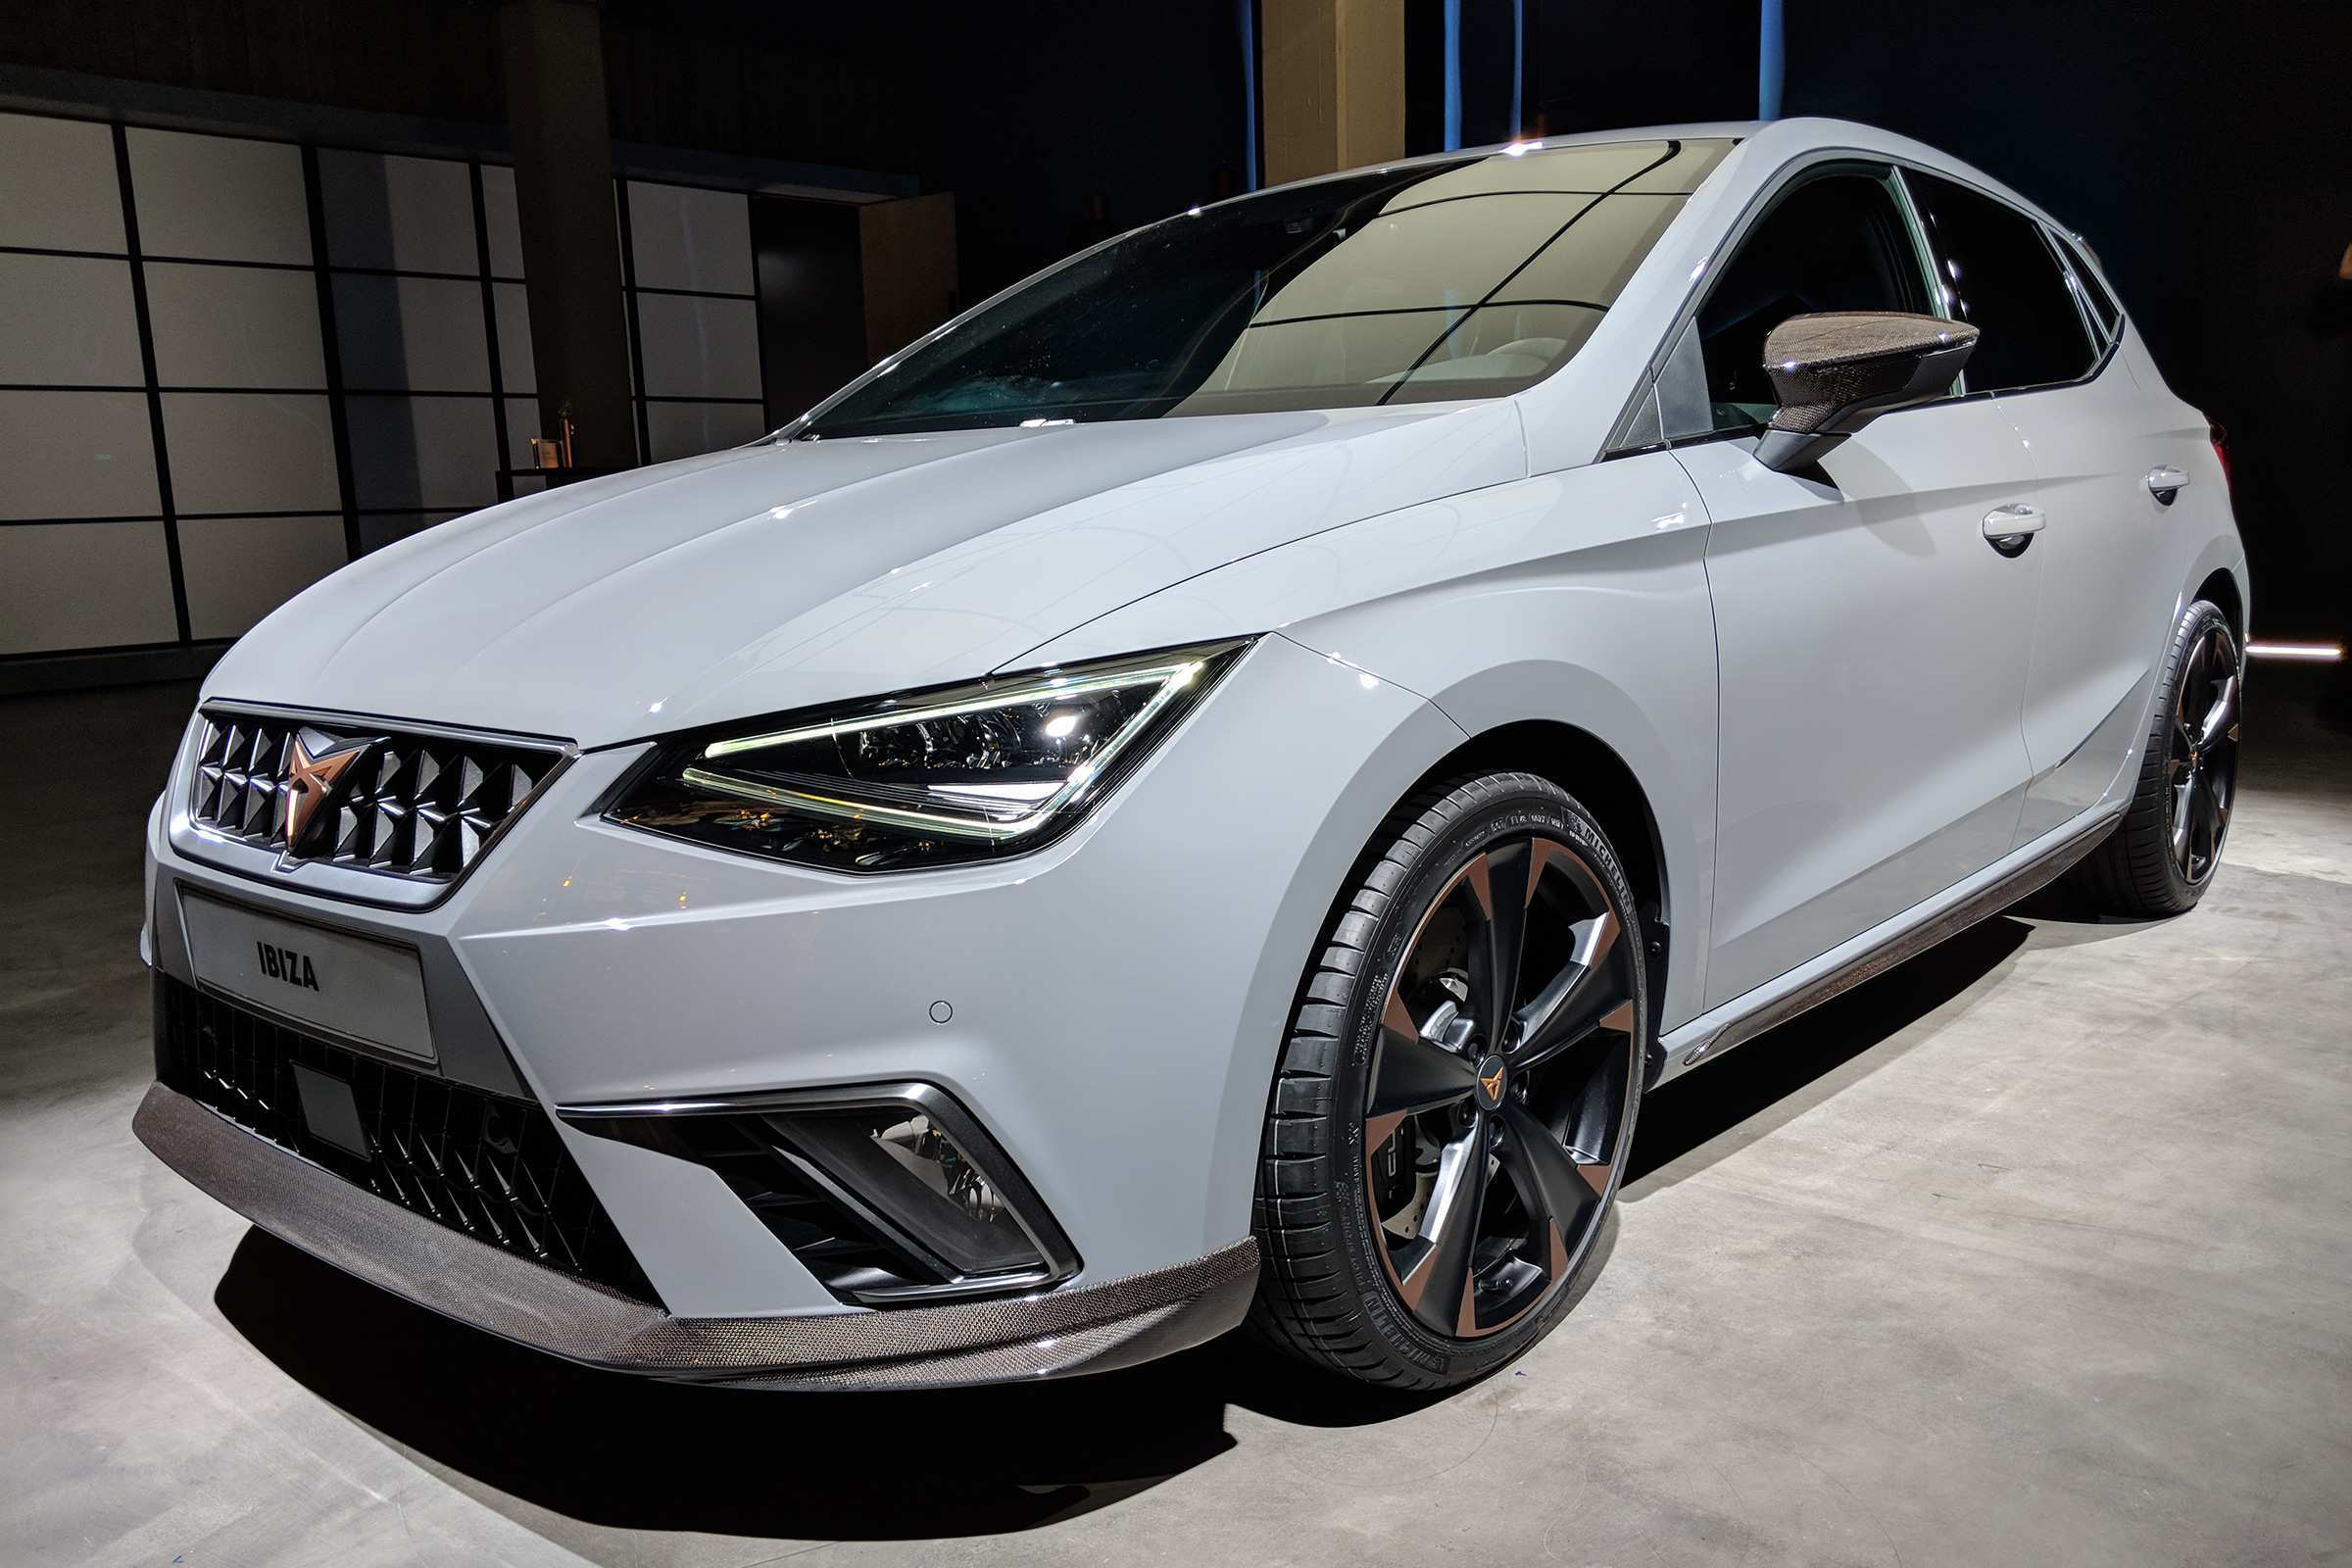 25 A 2019 Seat Ibiza Price Design And Review